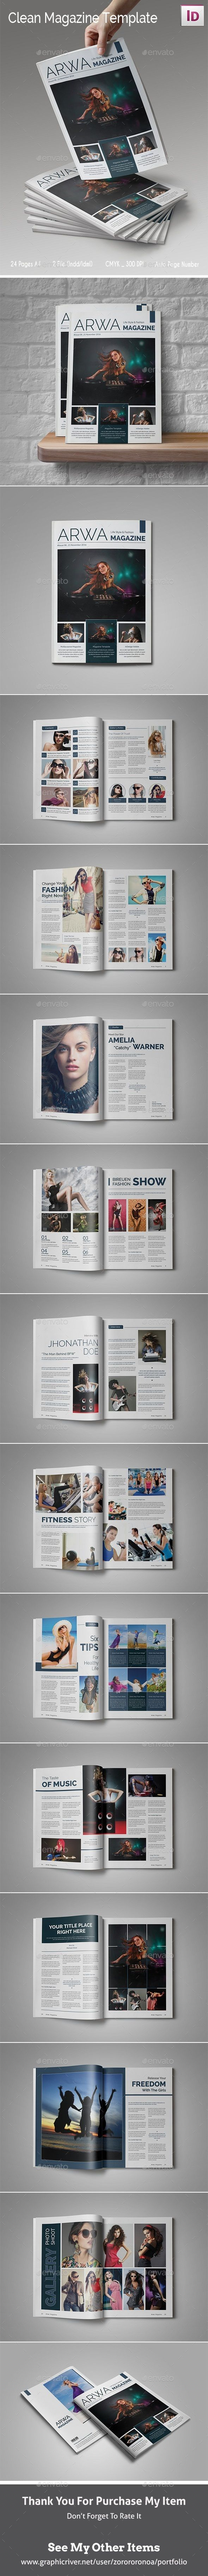 Clean Magazine Template — InDesign INDD #simple #trendy • Download ➝ https://graphicriver.net/item/clean-magazine-template/18807792?ref=pxcr